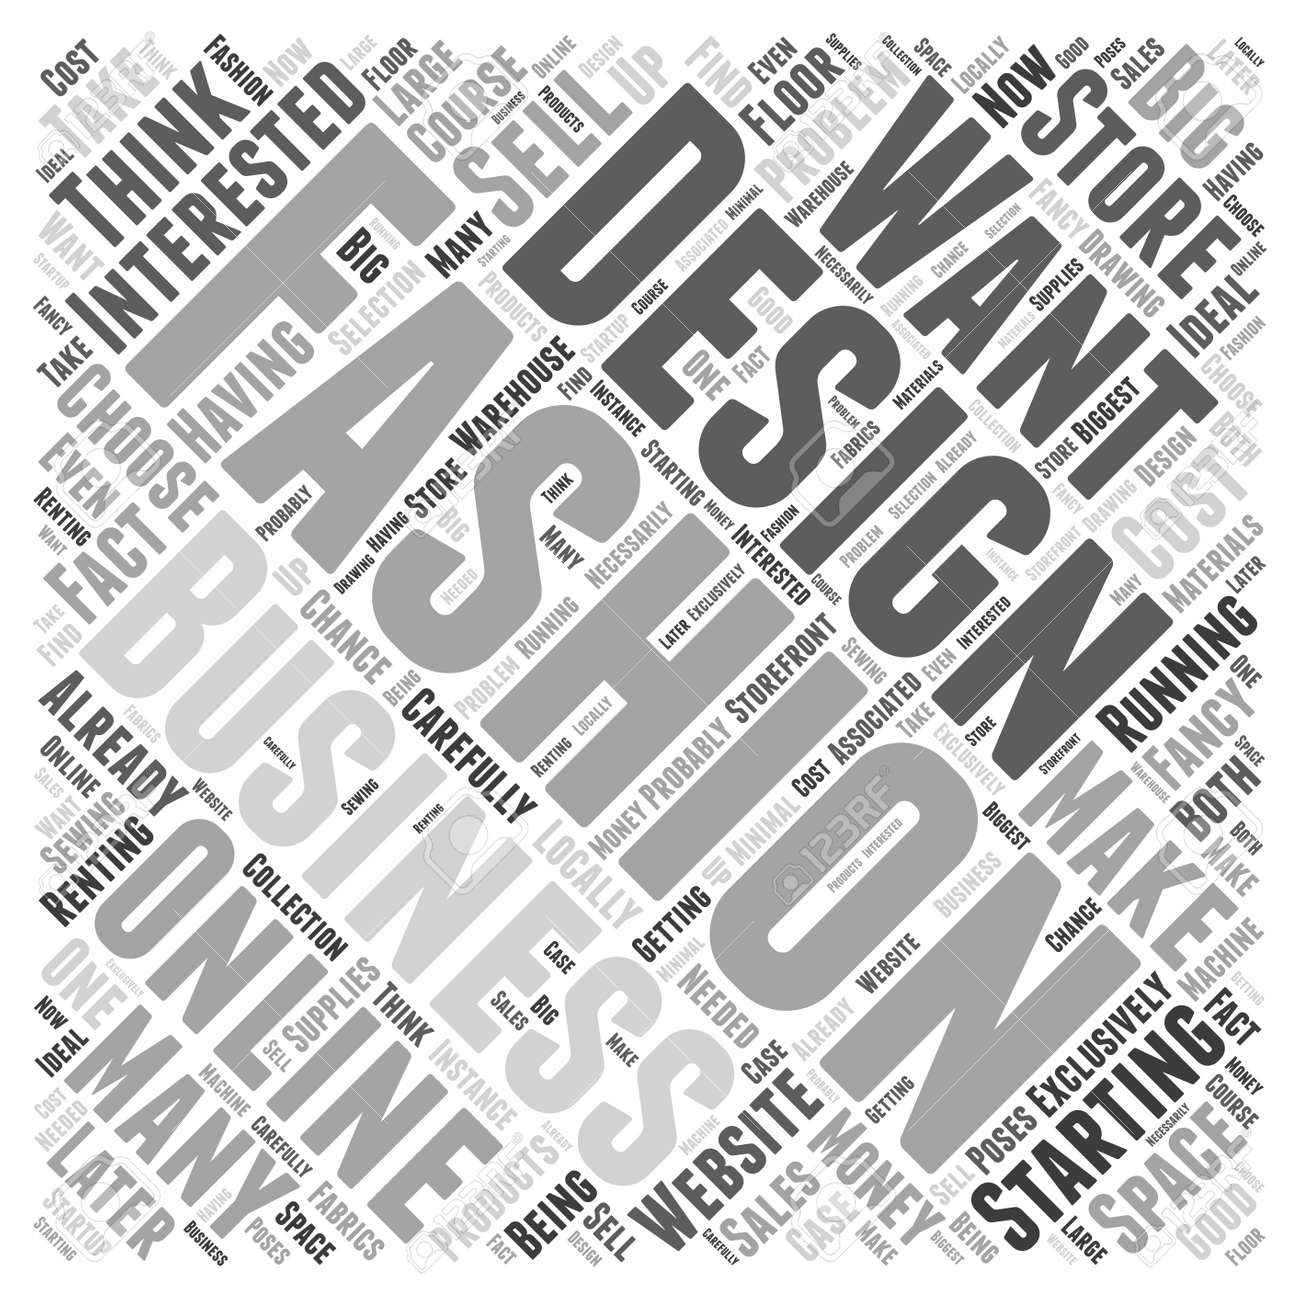 Can You Make Money As A Fashion Designer Word Cloud Concept Royalty Free Cliparts Vectors And Stock Illustration Image 72588503